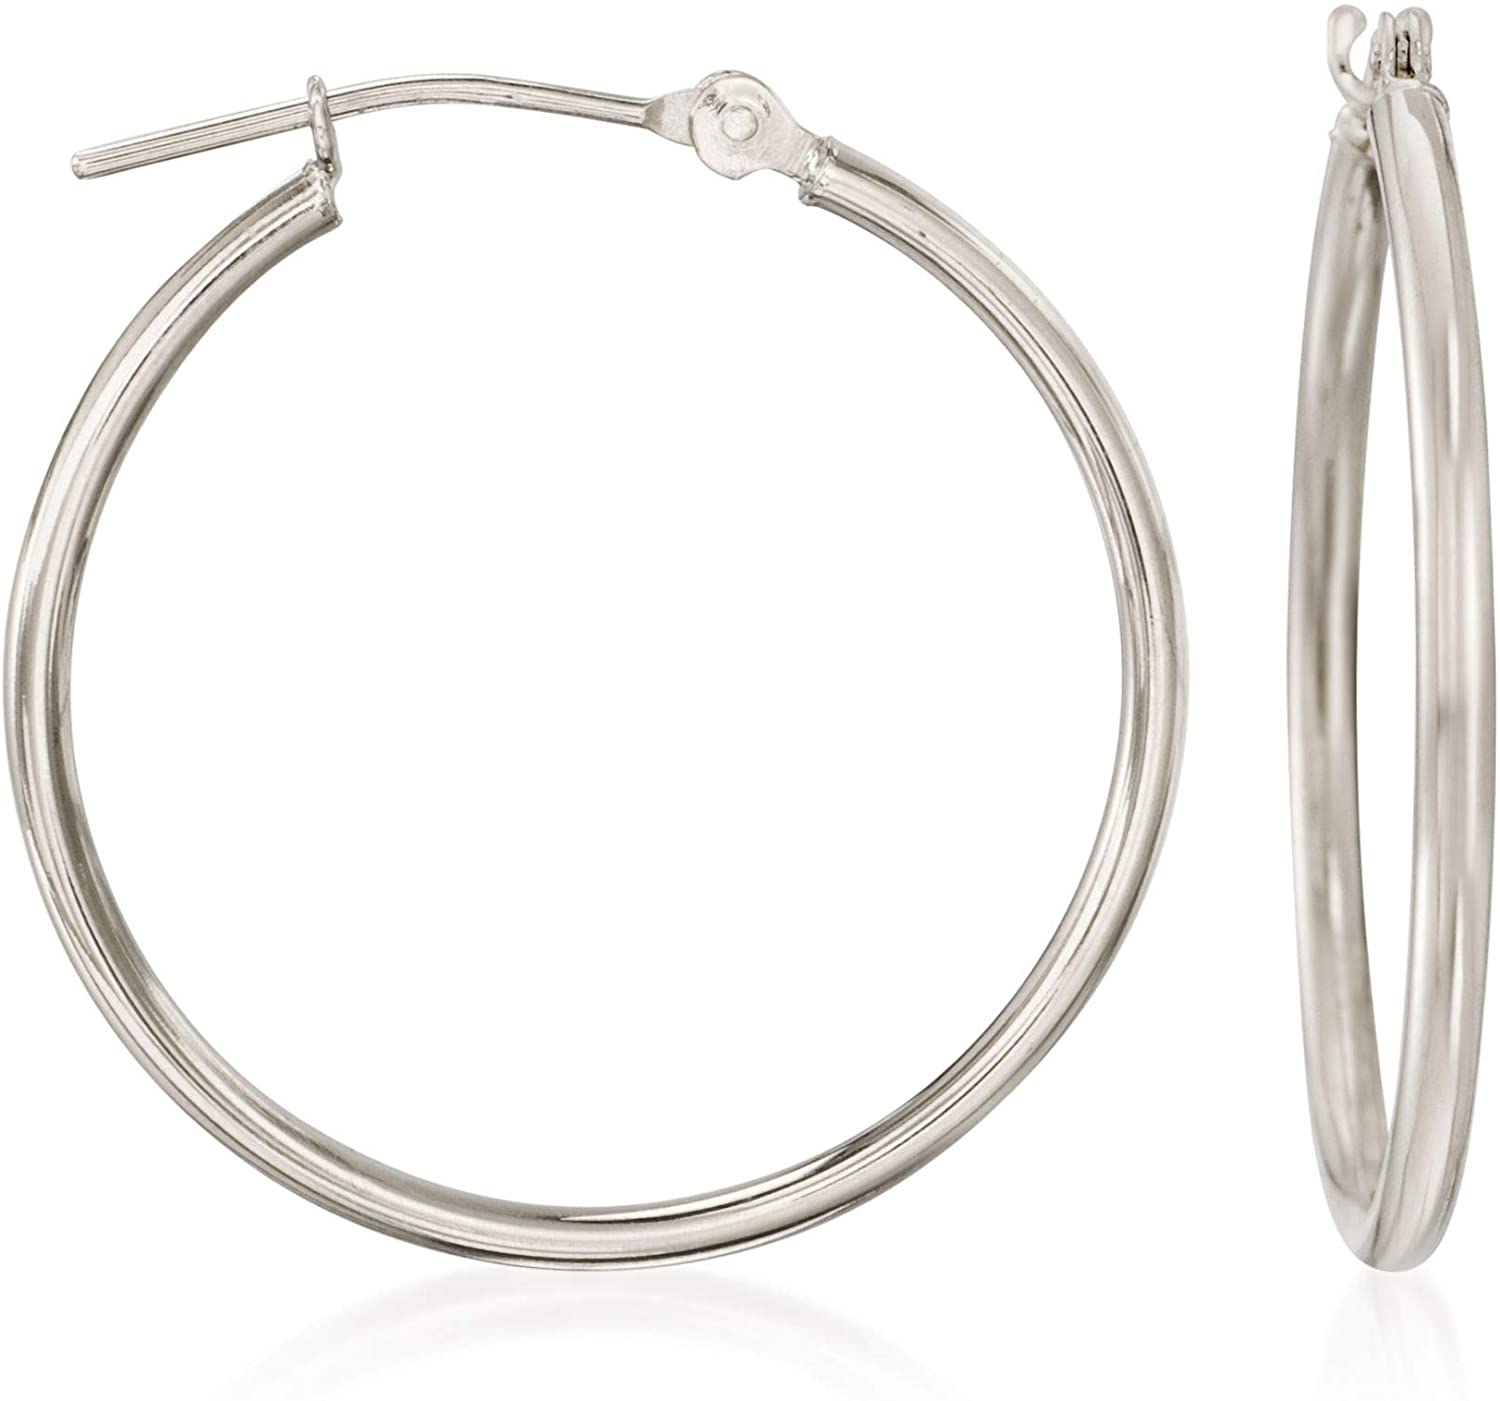 Ross-Simons 1.5mm 14kt White Gold Hoop Earrings